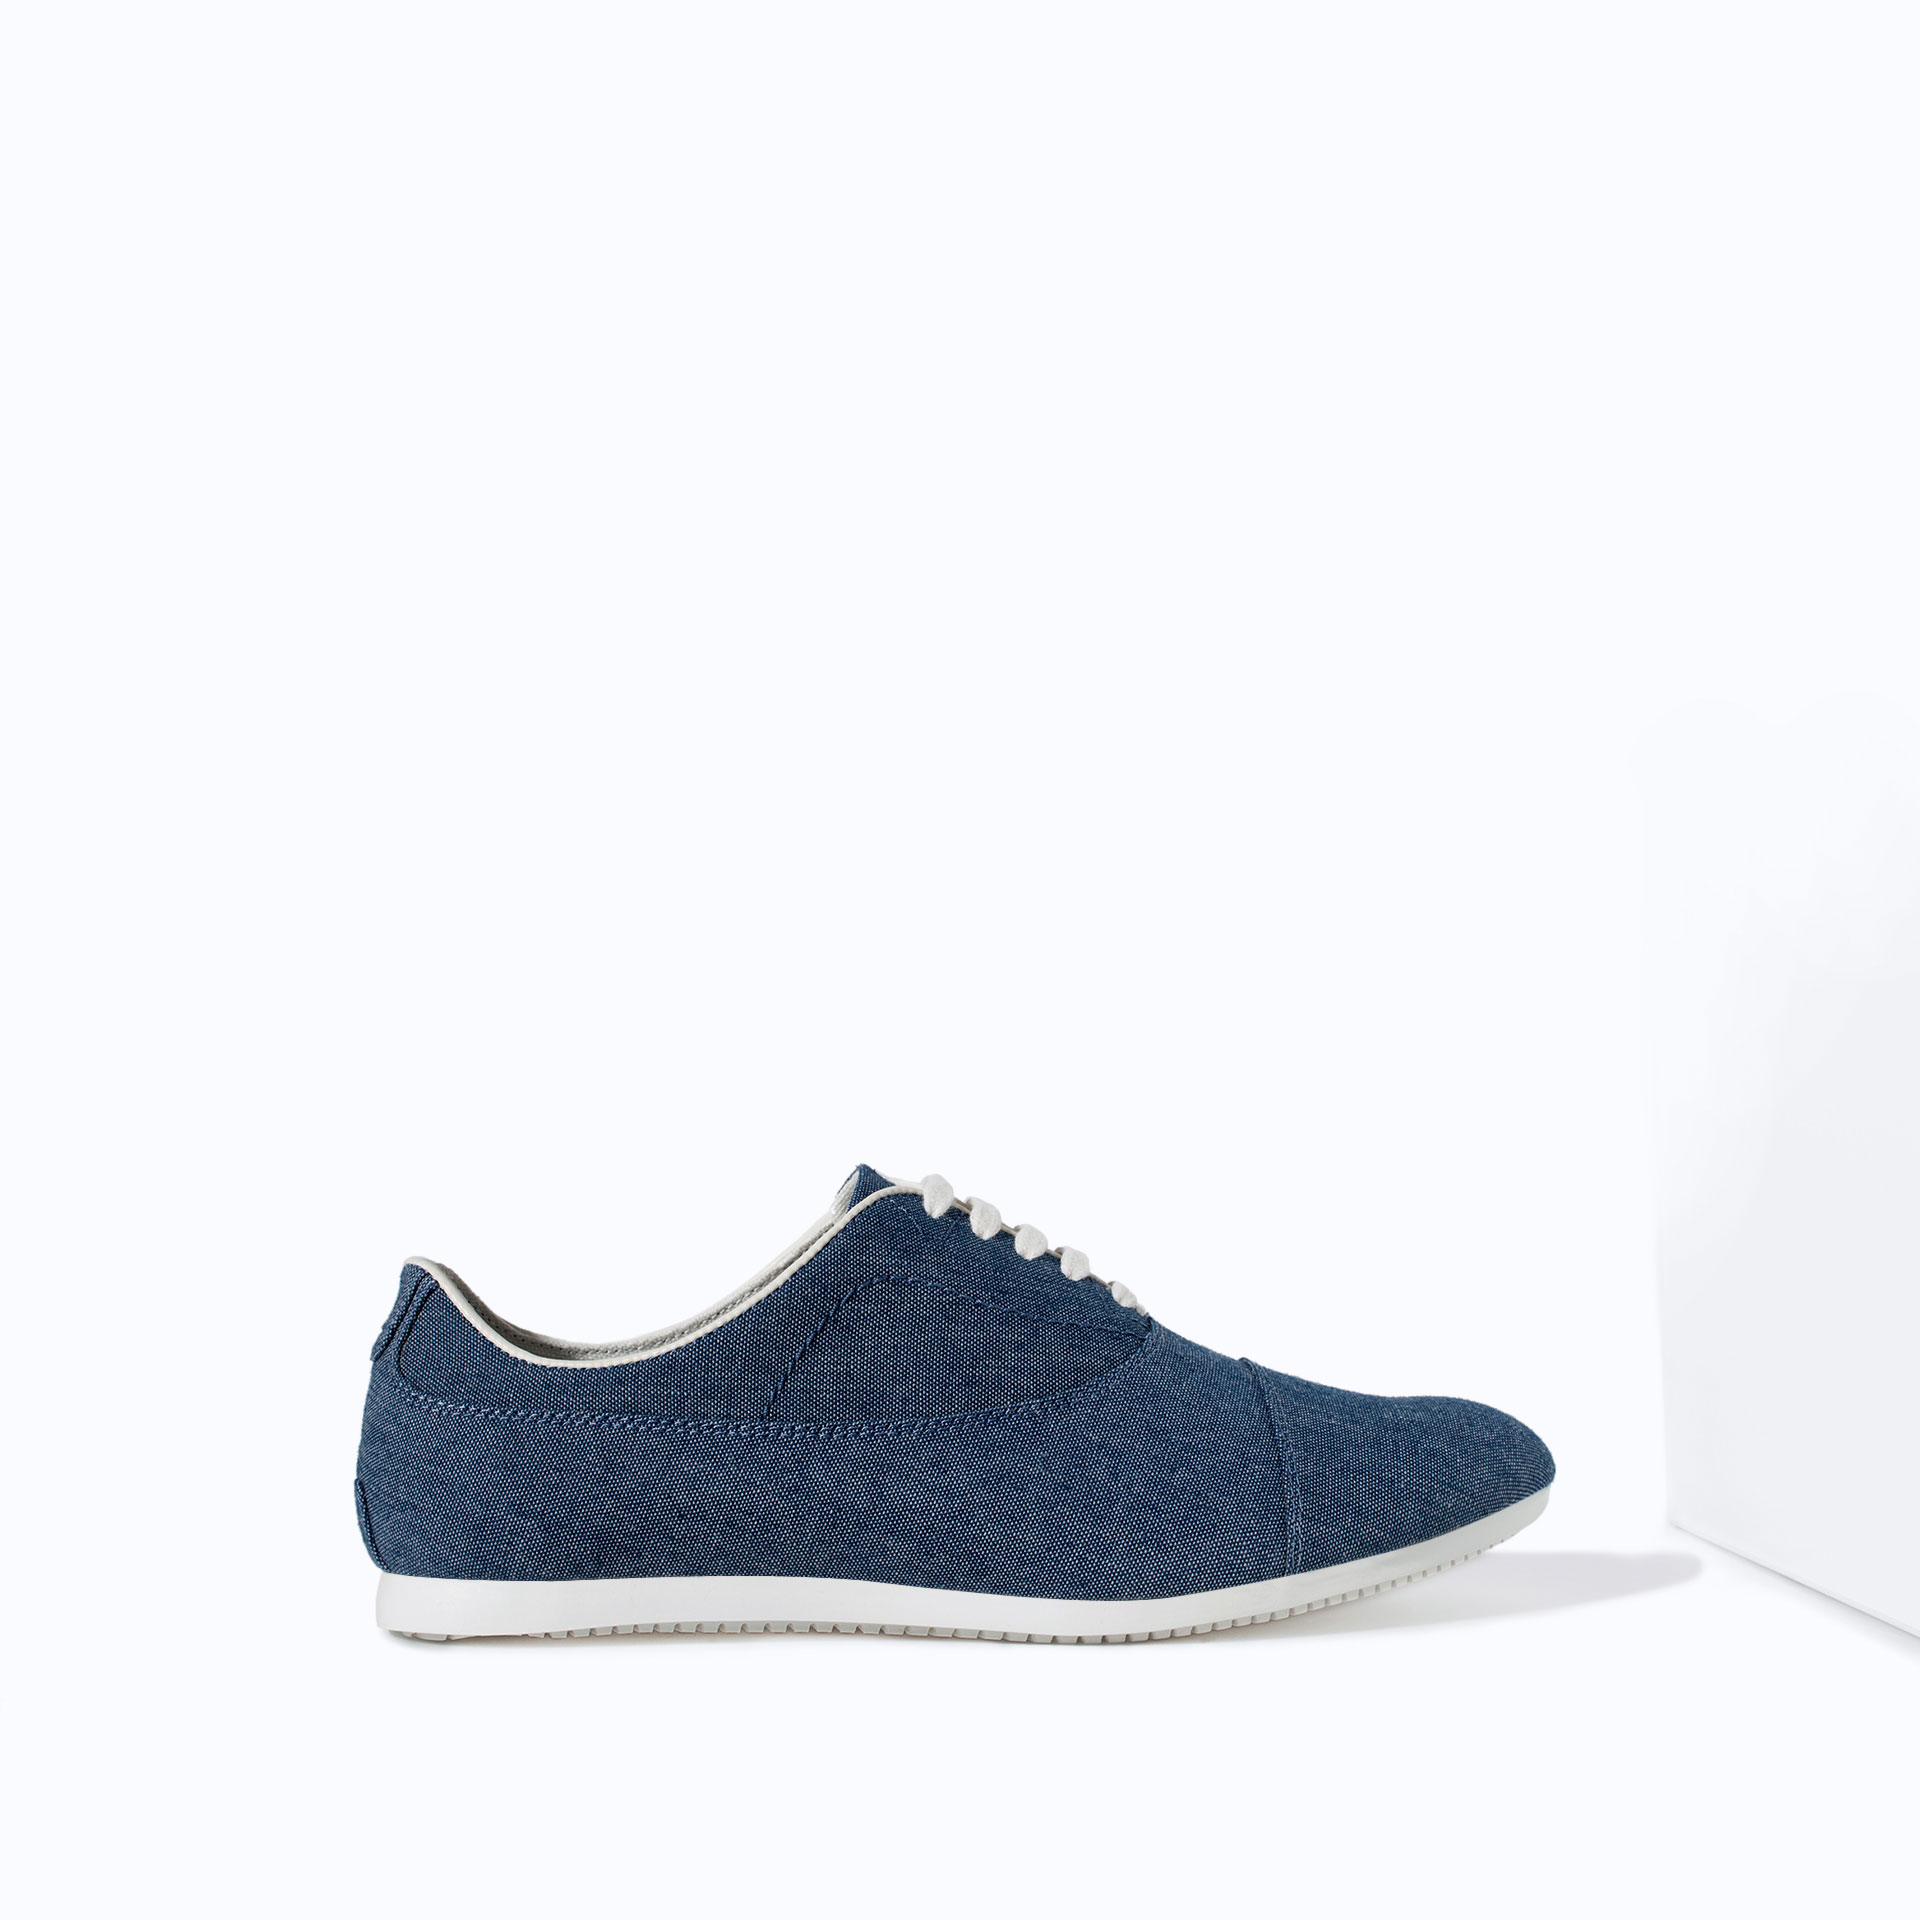 zara canvas oxford shoe in blue for lyst